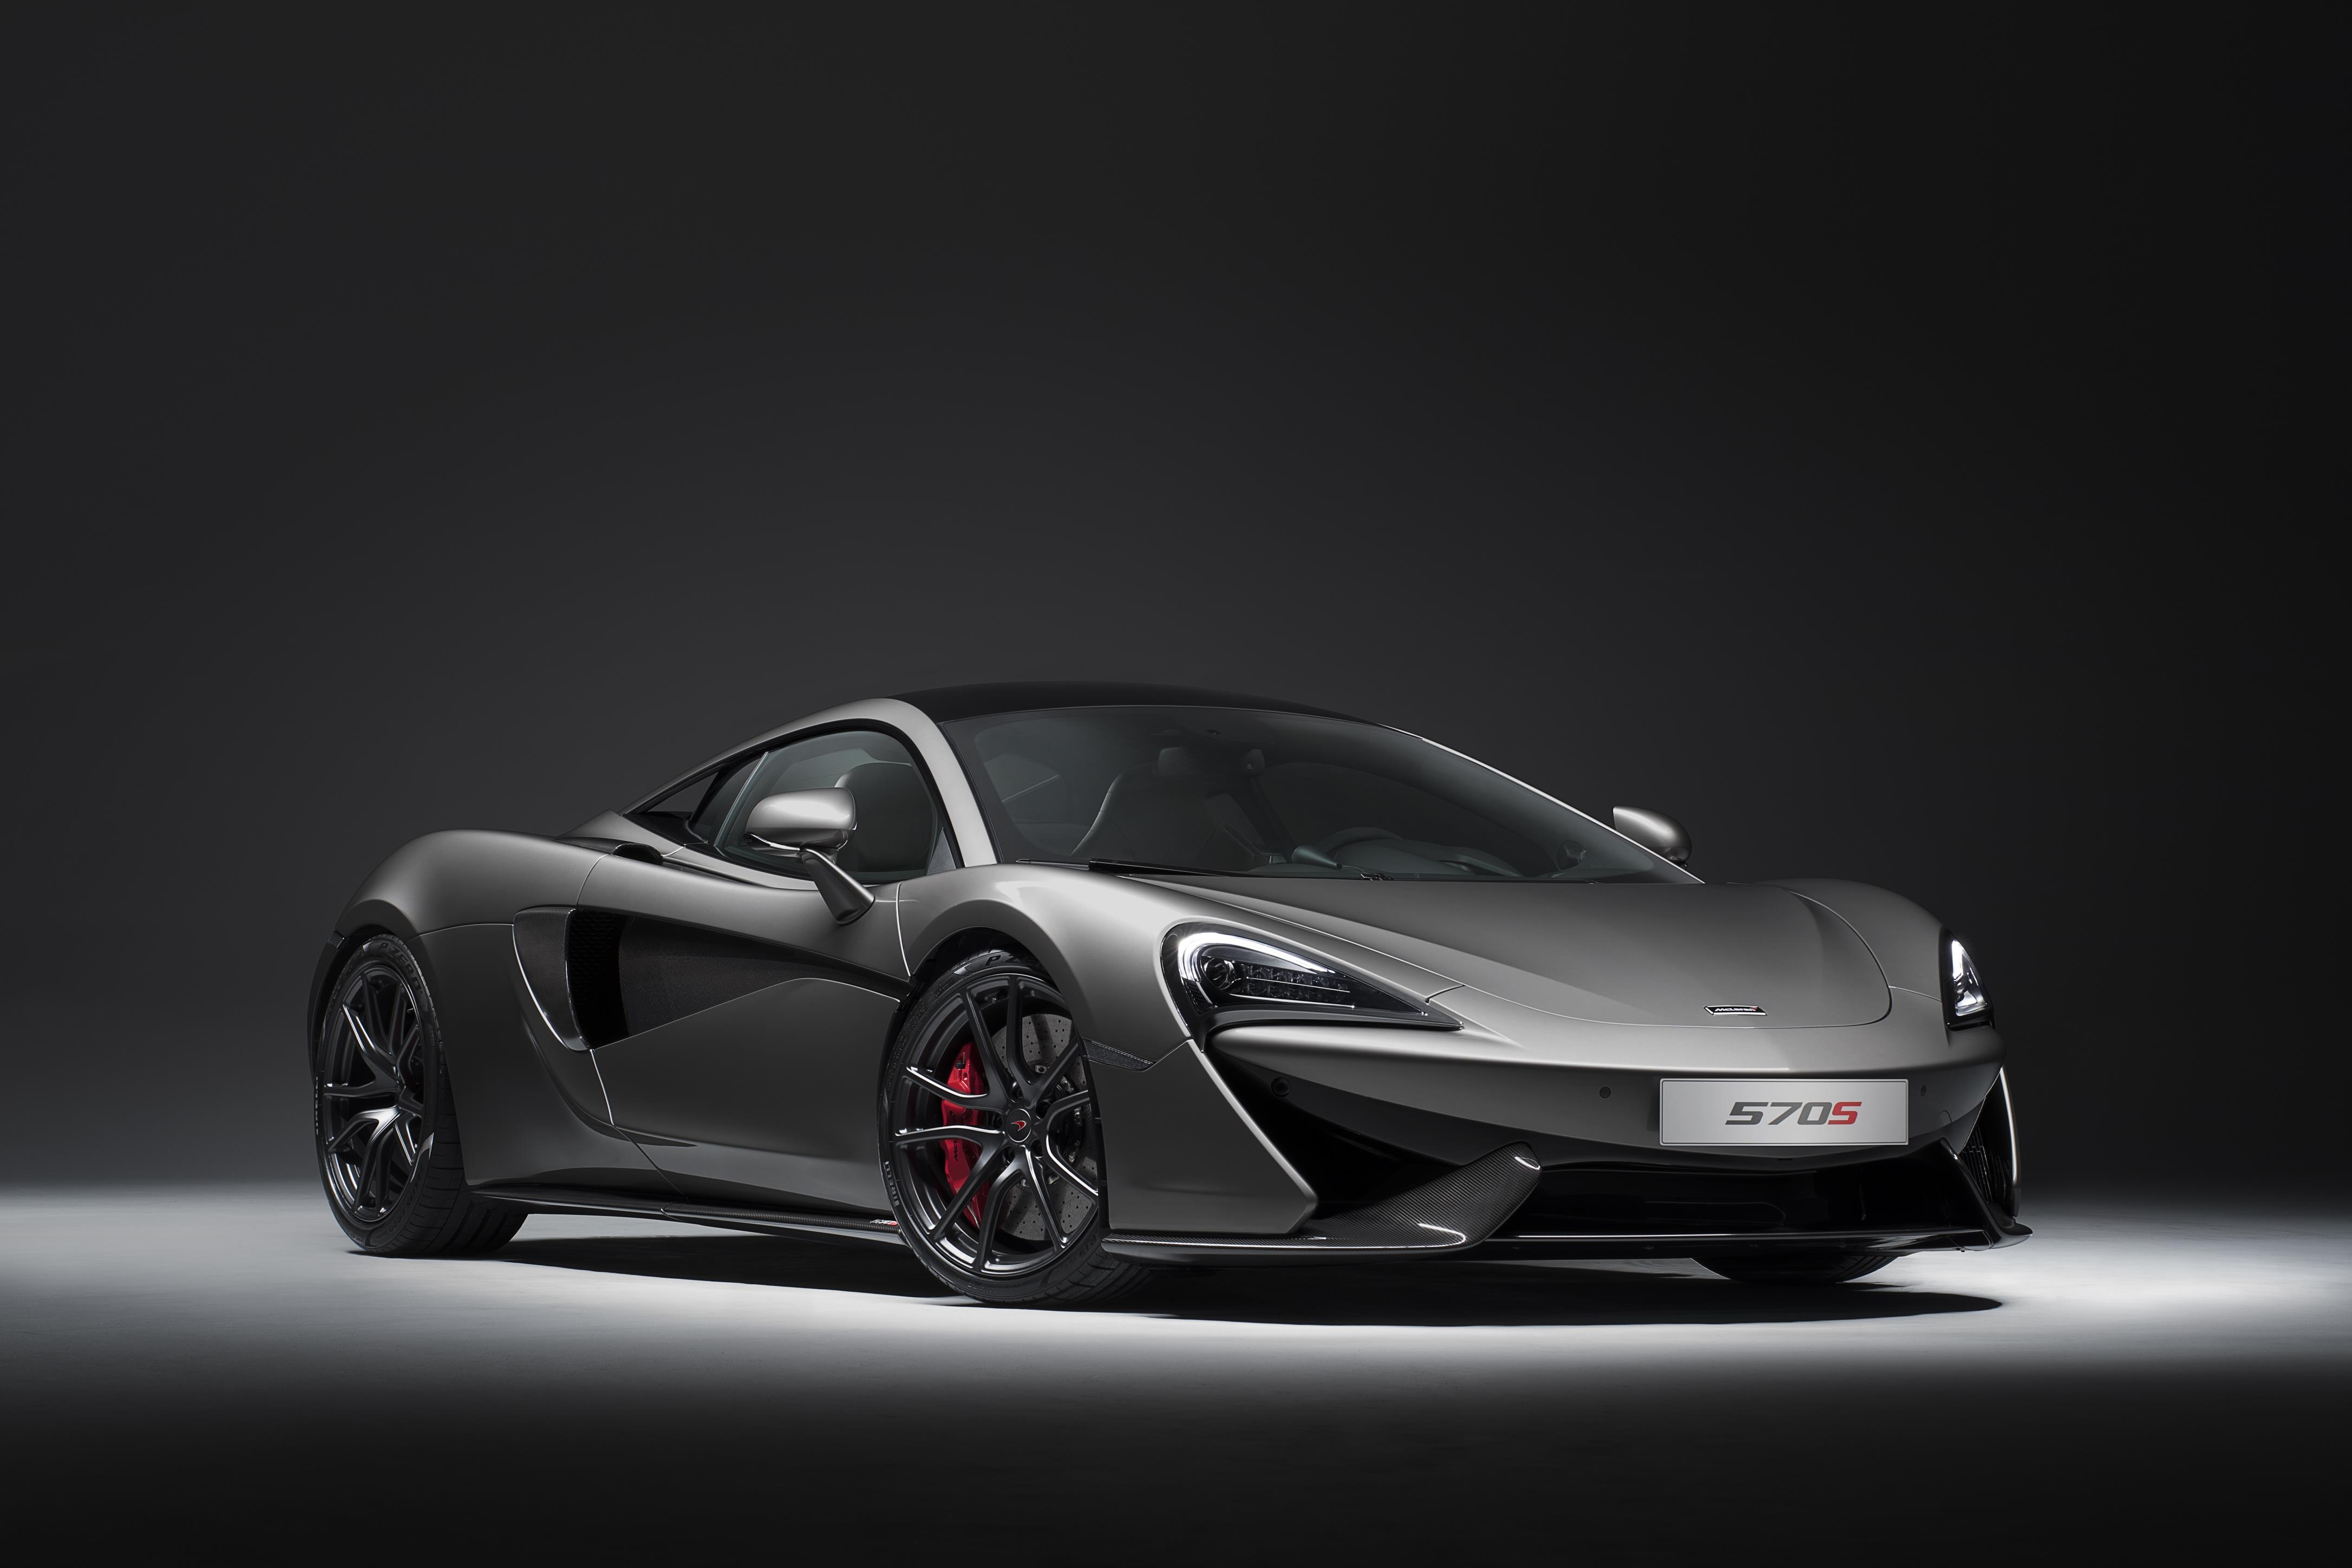 Mclaren 570s Review Prices Specs And 0 60 Time Evo